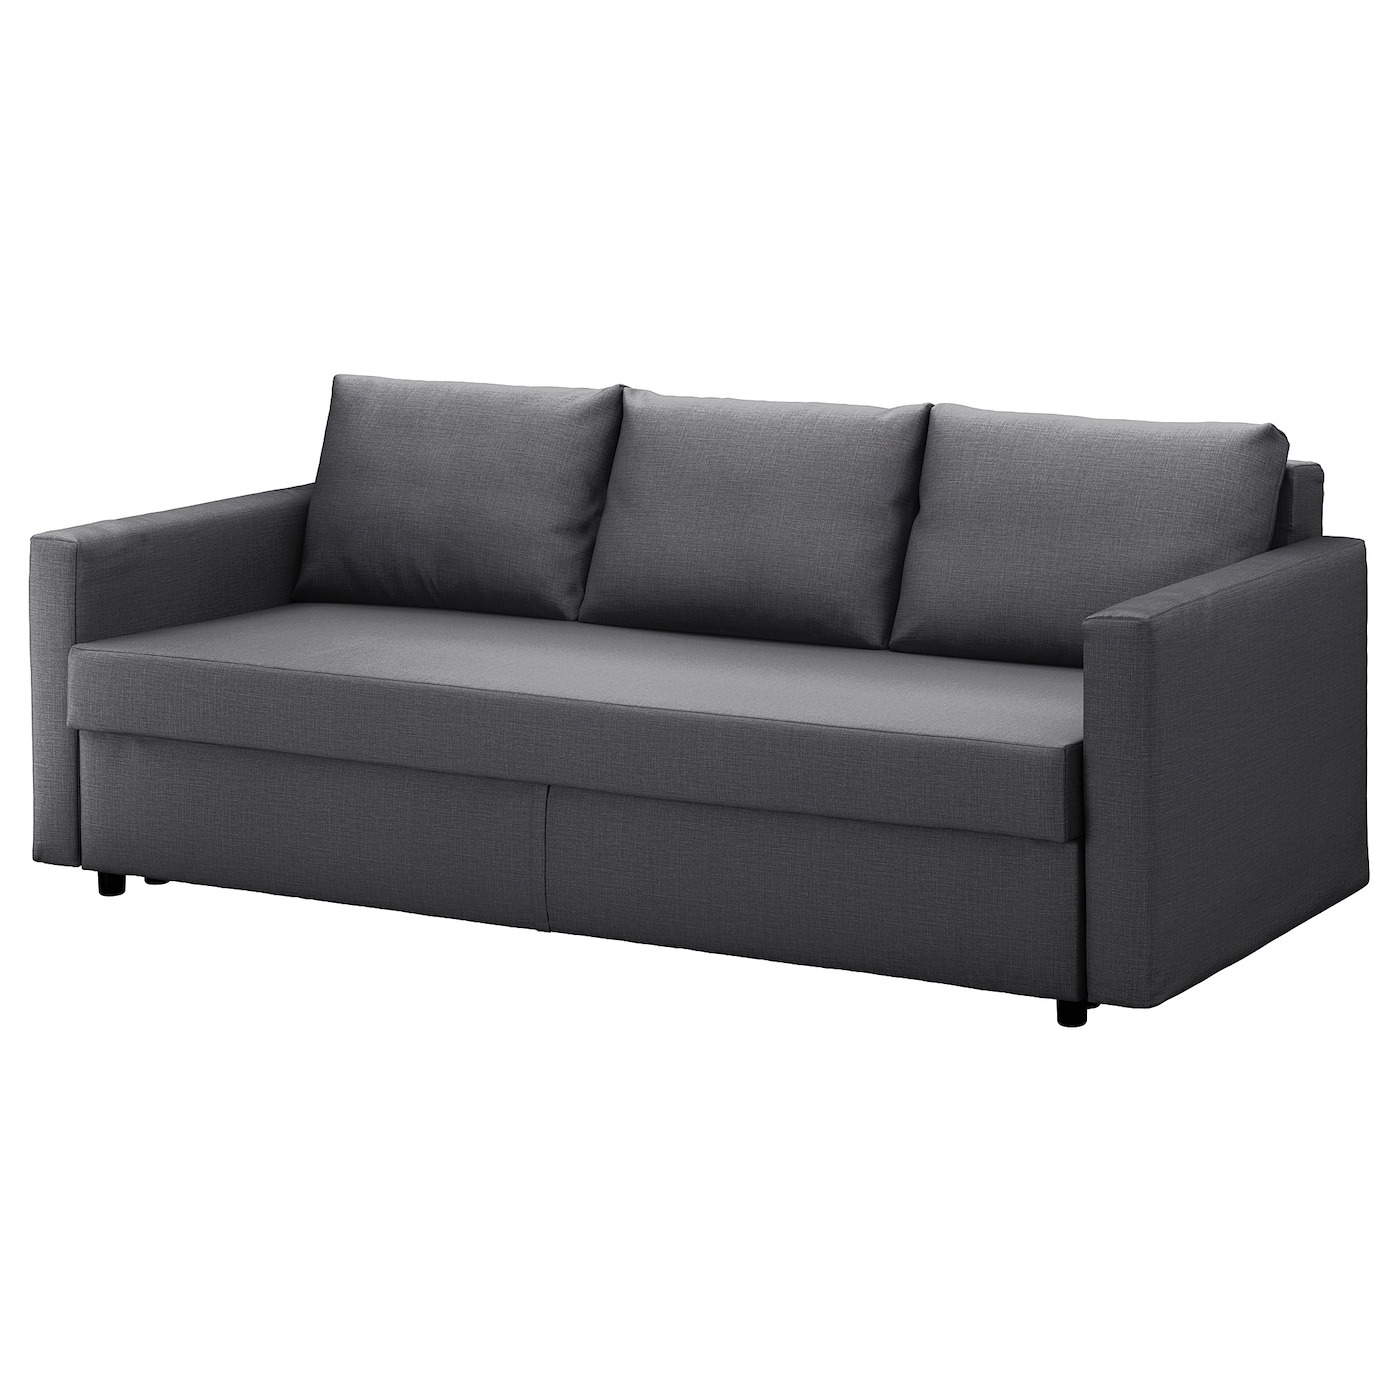 Good IKEA FRIHETEN Three Seat Sofa Bed Readily Converts Into A Bed.